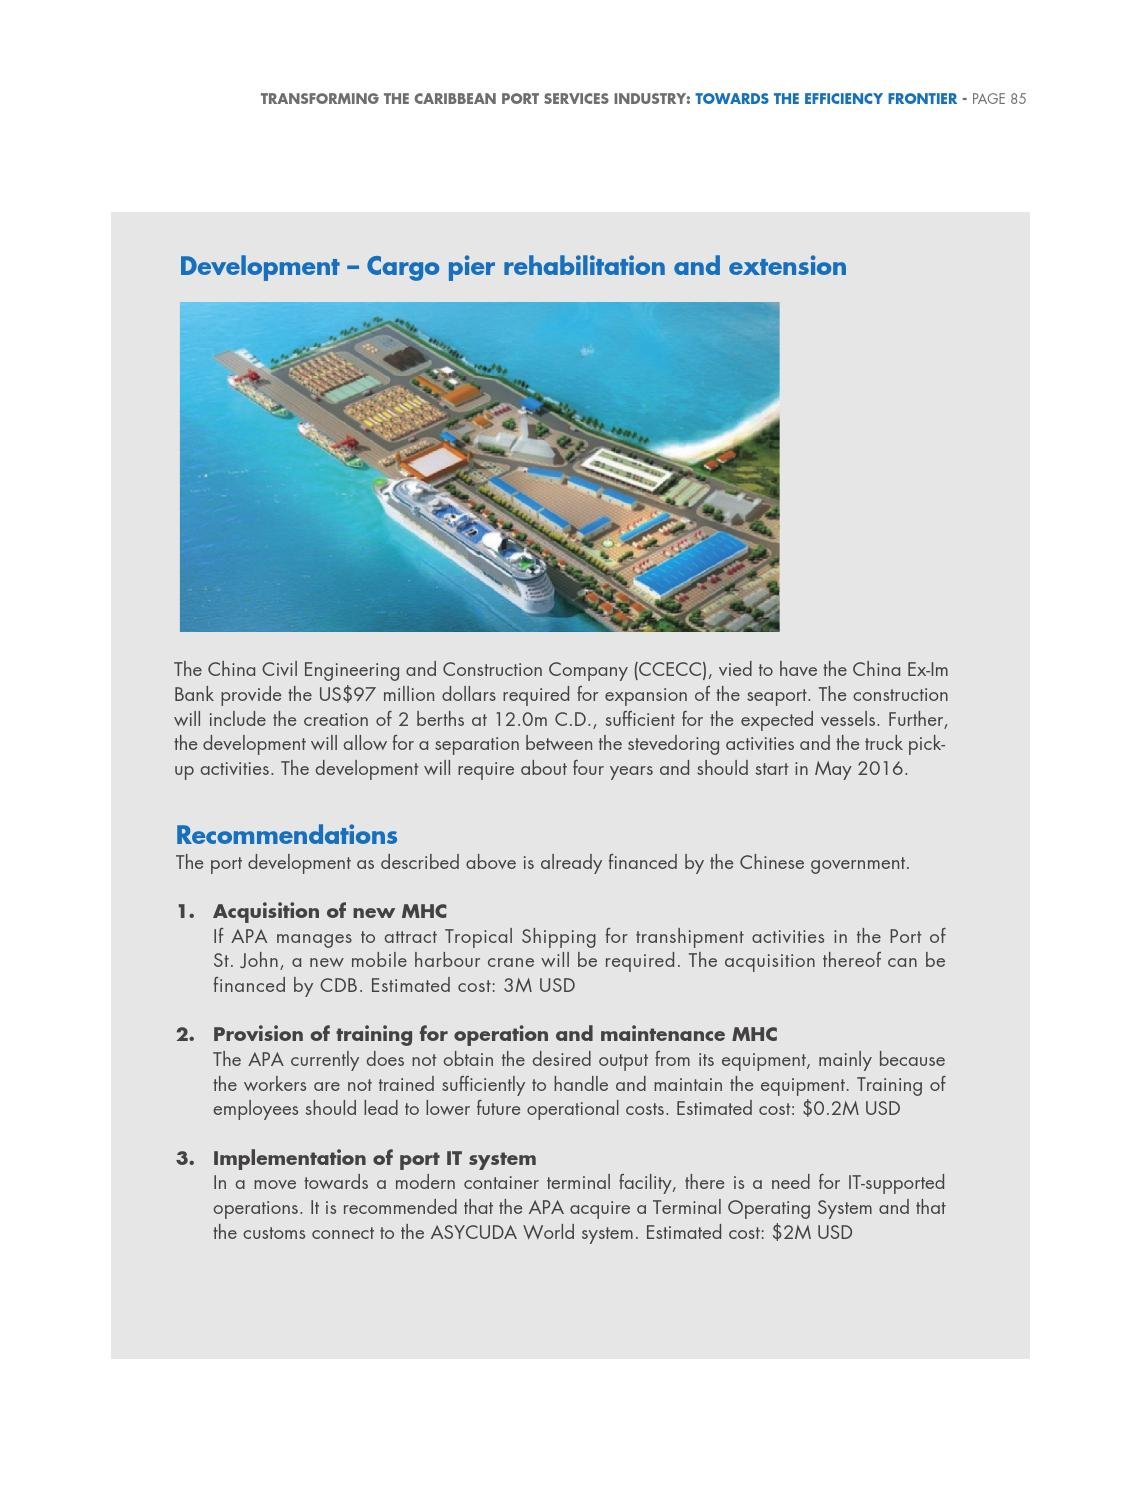 Transforming the Caribbean Port Services Industry: Towards